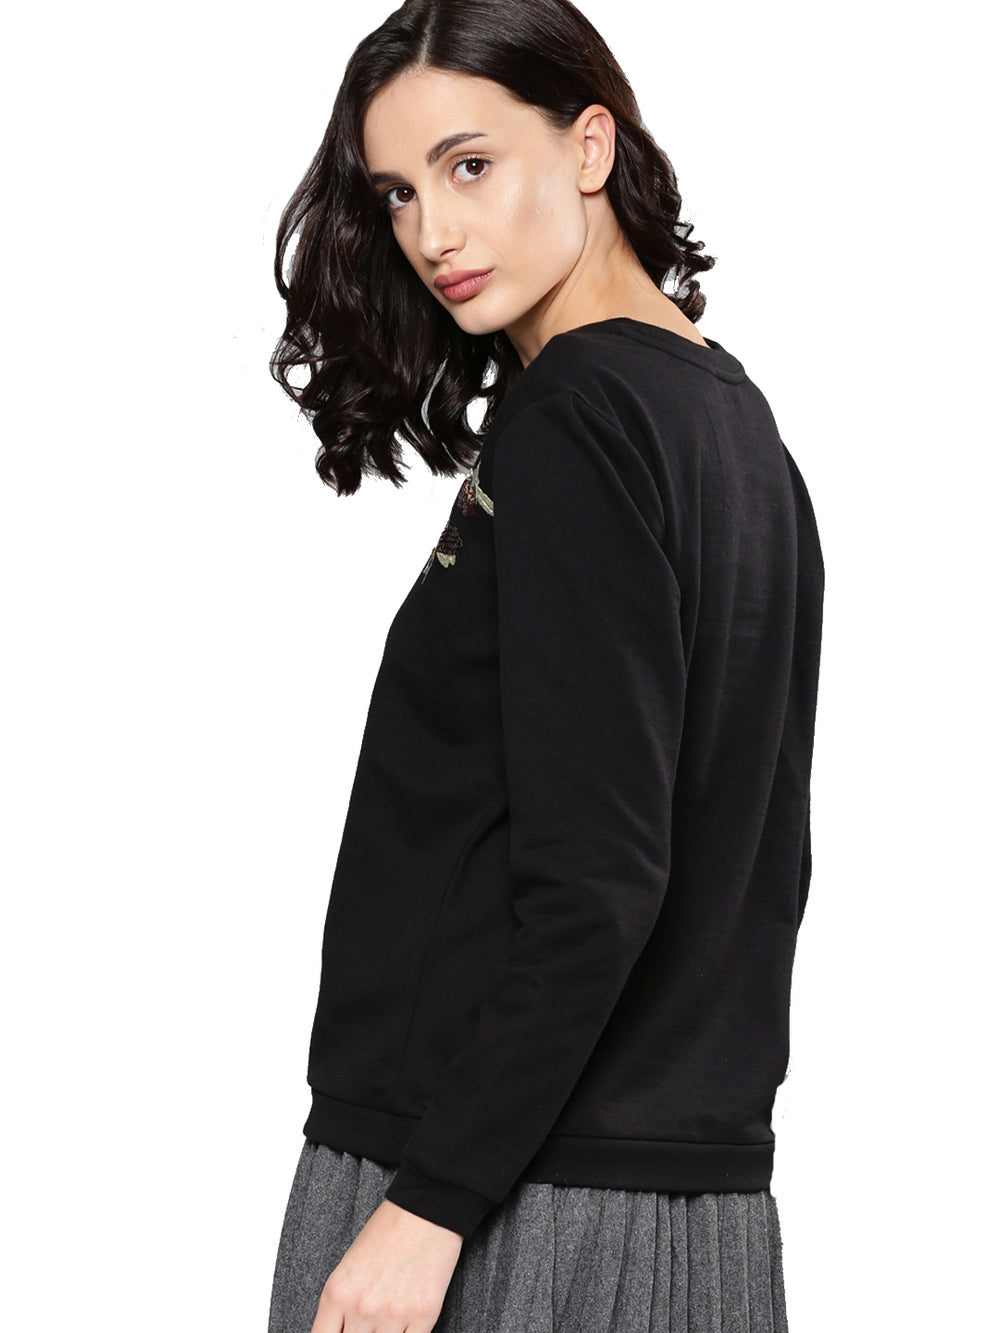 Black Solid Sweatshirt